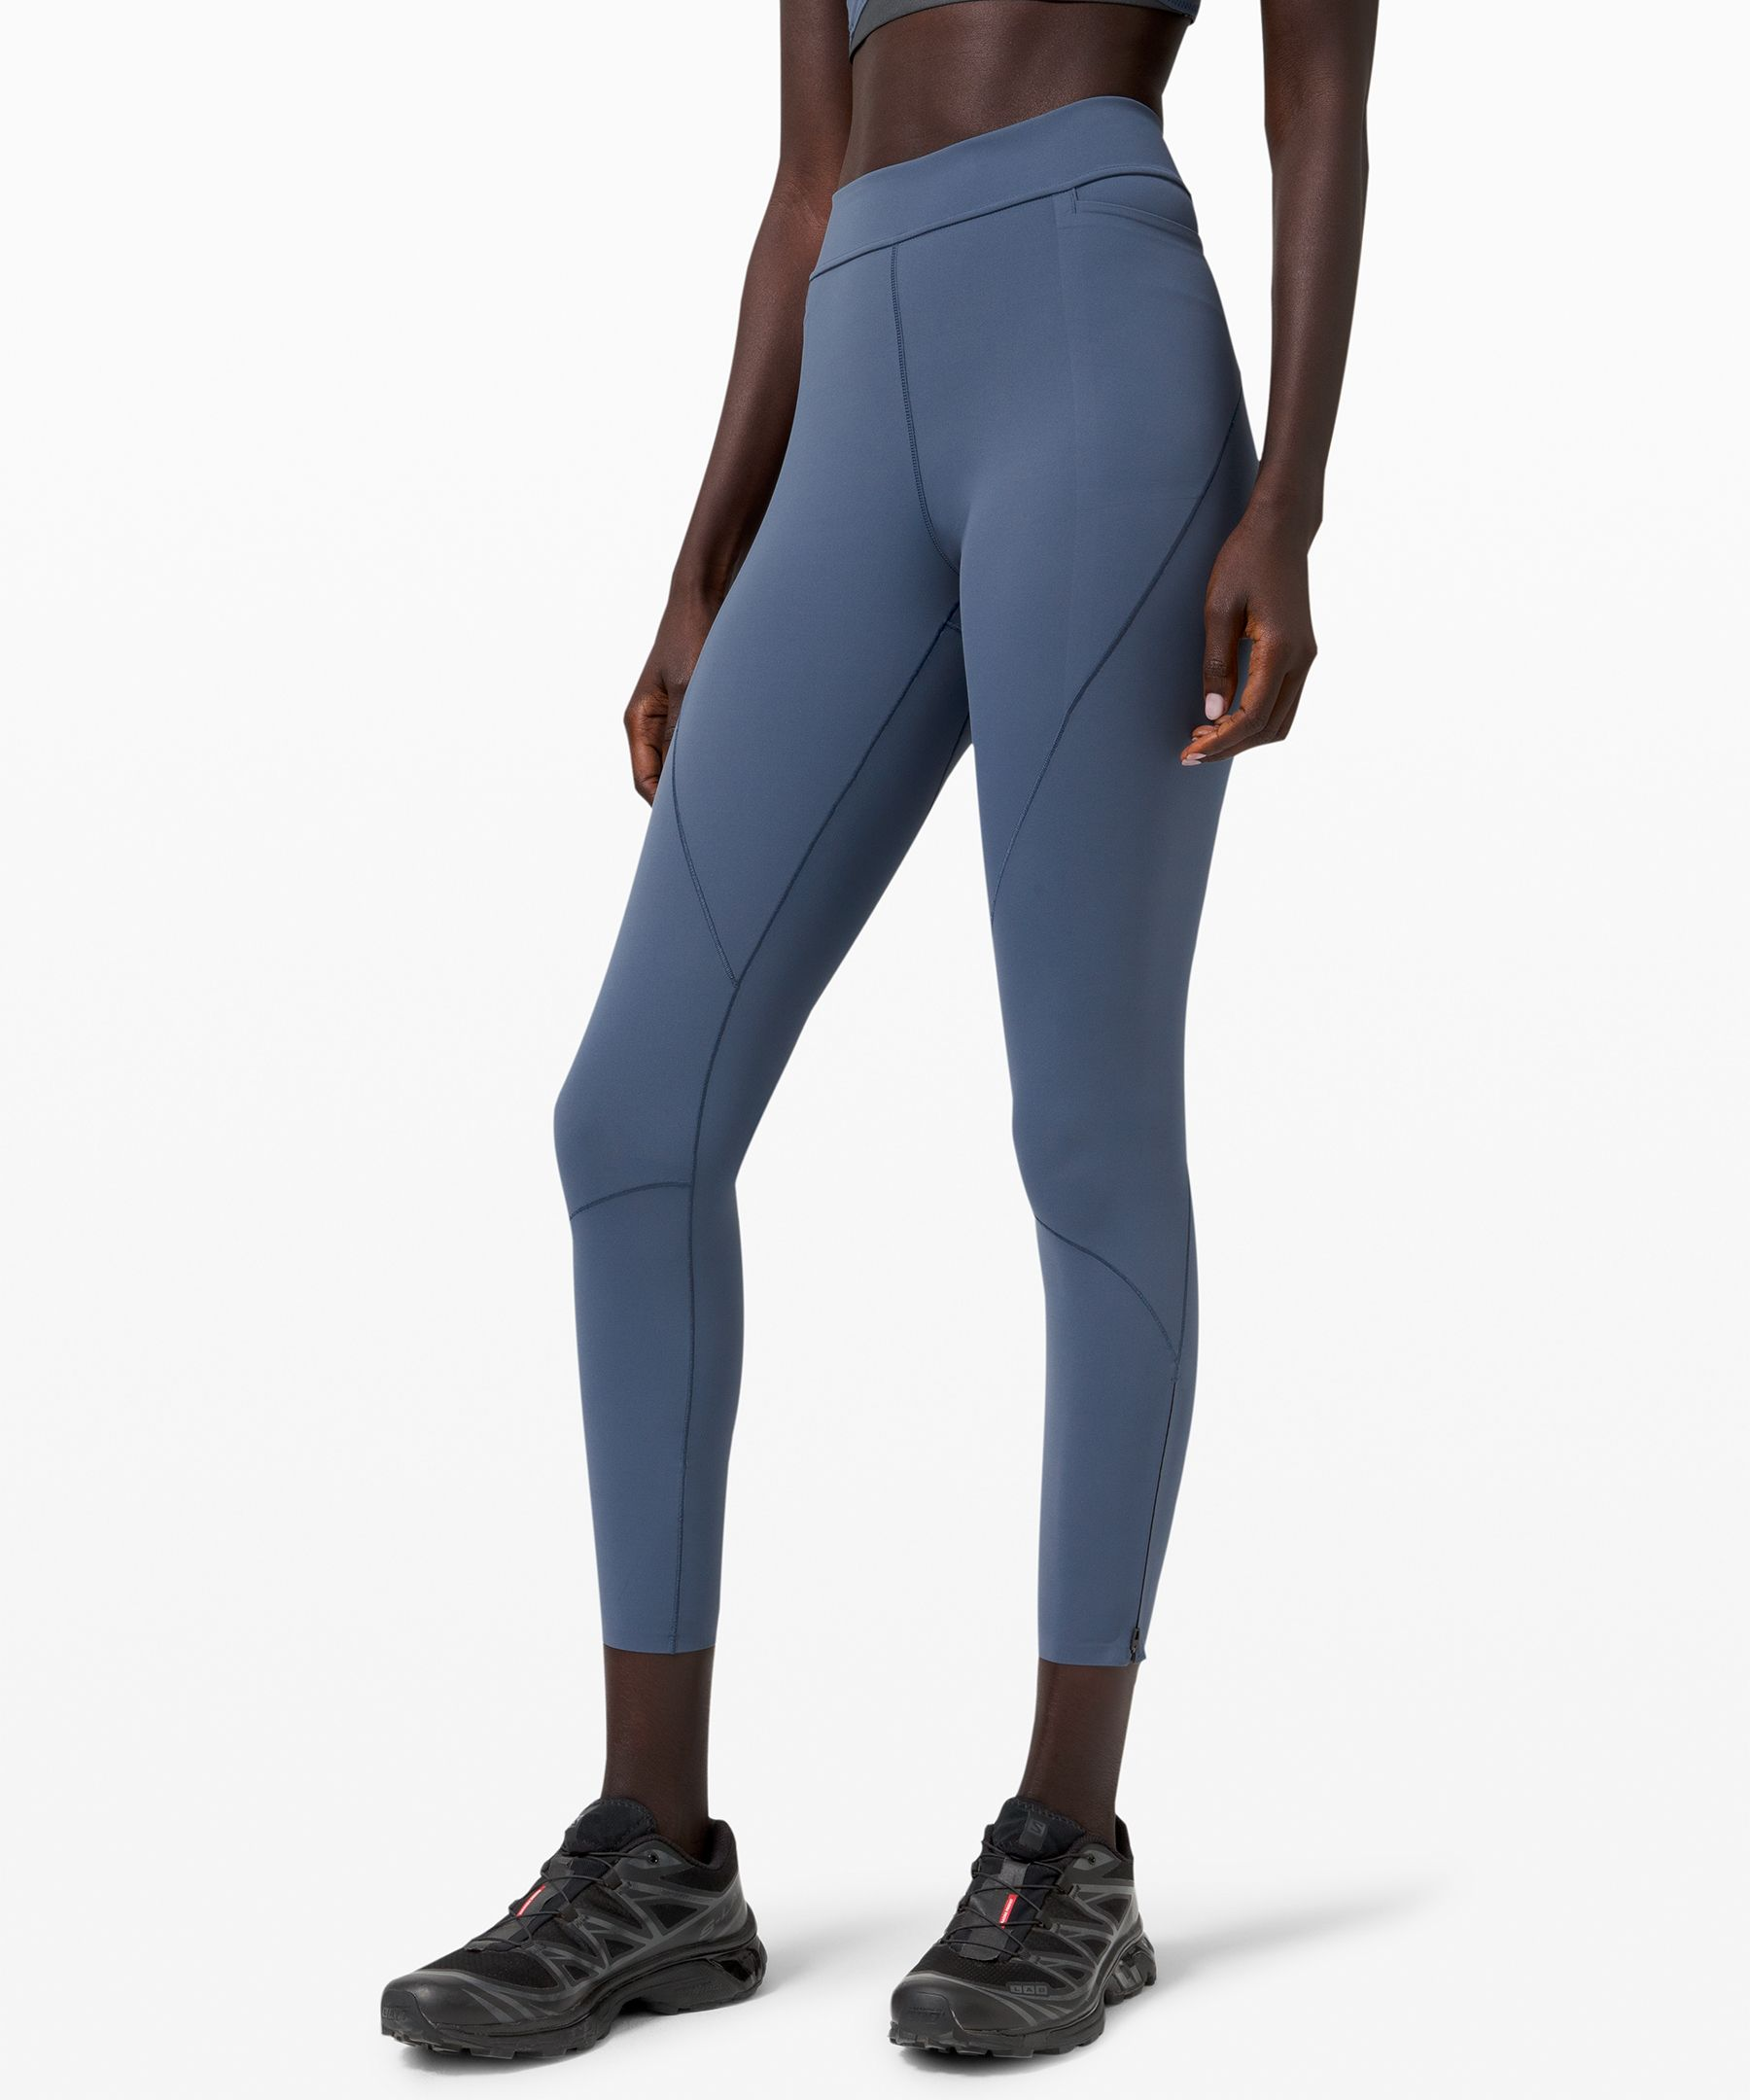 lululemon lab creates  lifestyle essentials for the  modern wardrobe, blending  streamlined function with  innovative designs. These  mid-rise tights are designed  with seams that contour the  leg for a sleek sensibility  and ankle zippers at the hem  for easy on and off. Throw  them on for a low-impact  workout or for wherever your  day may take you.